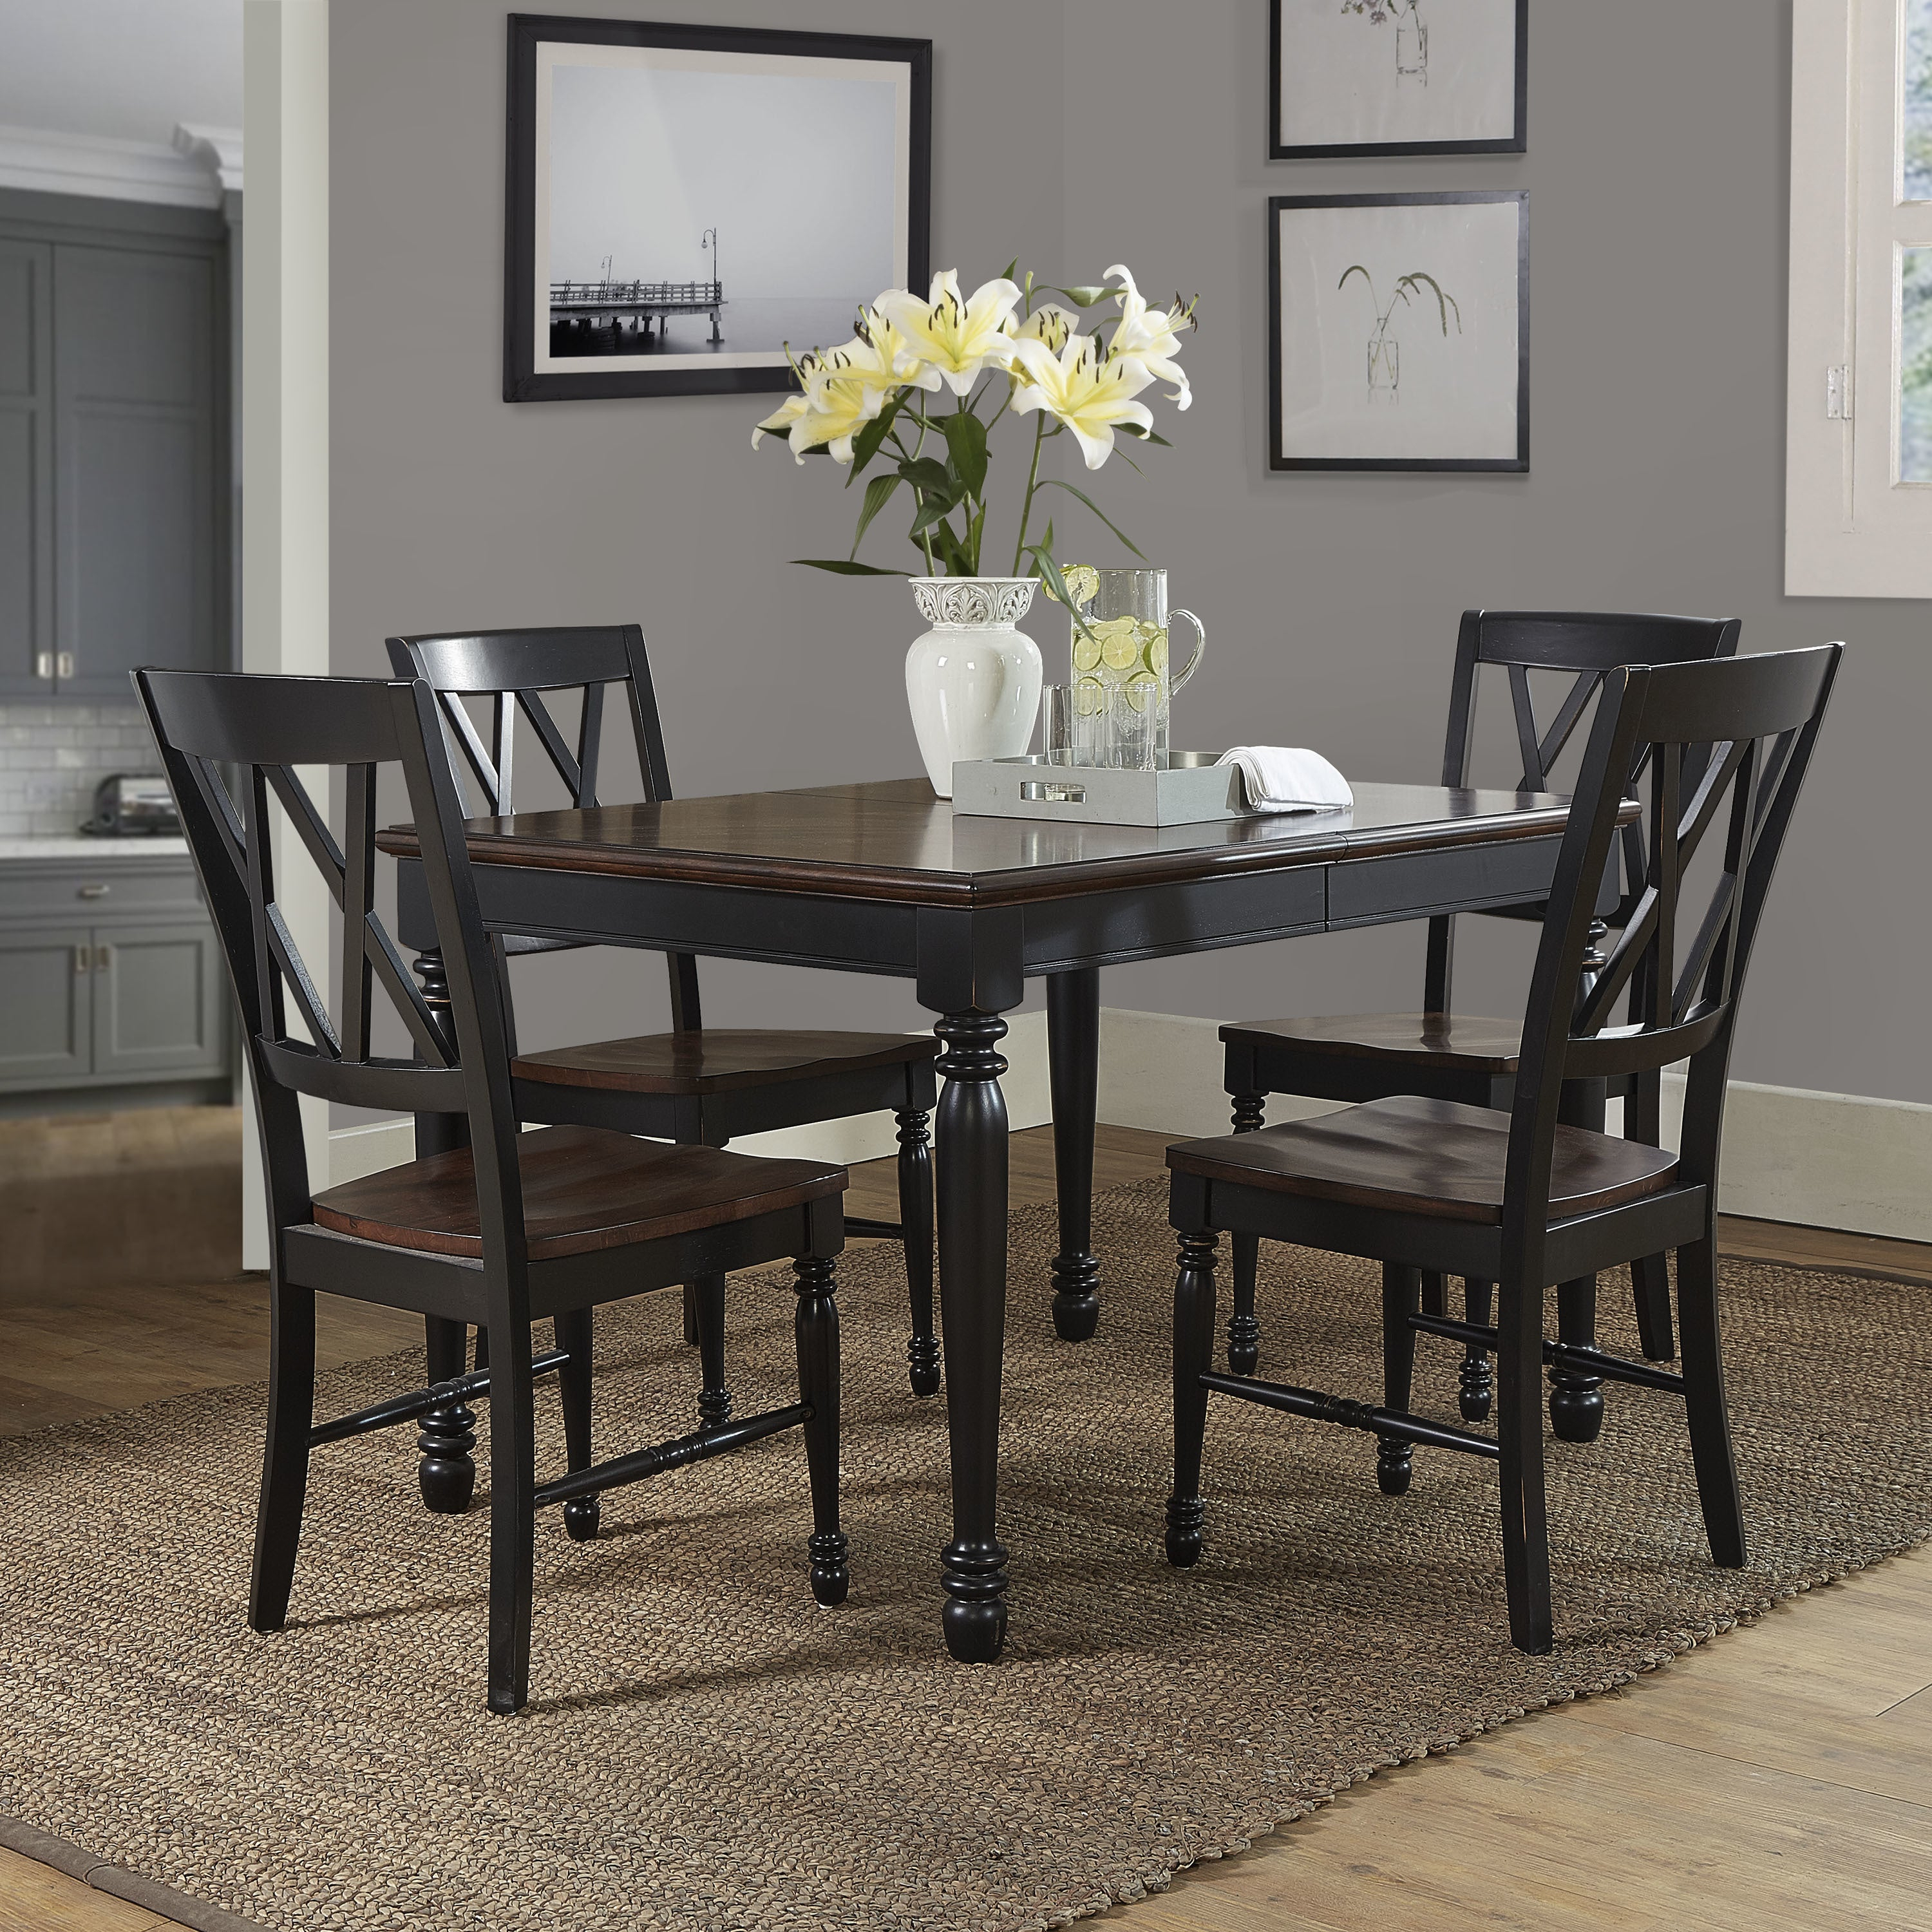 Current Shop Shelby Black Wood 5 Piece Dining Set – Free Shipping Today Inside Laconia 7 Pieces Solid Wood Dining Sets (Set Of 7) (#1 of 20)